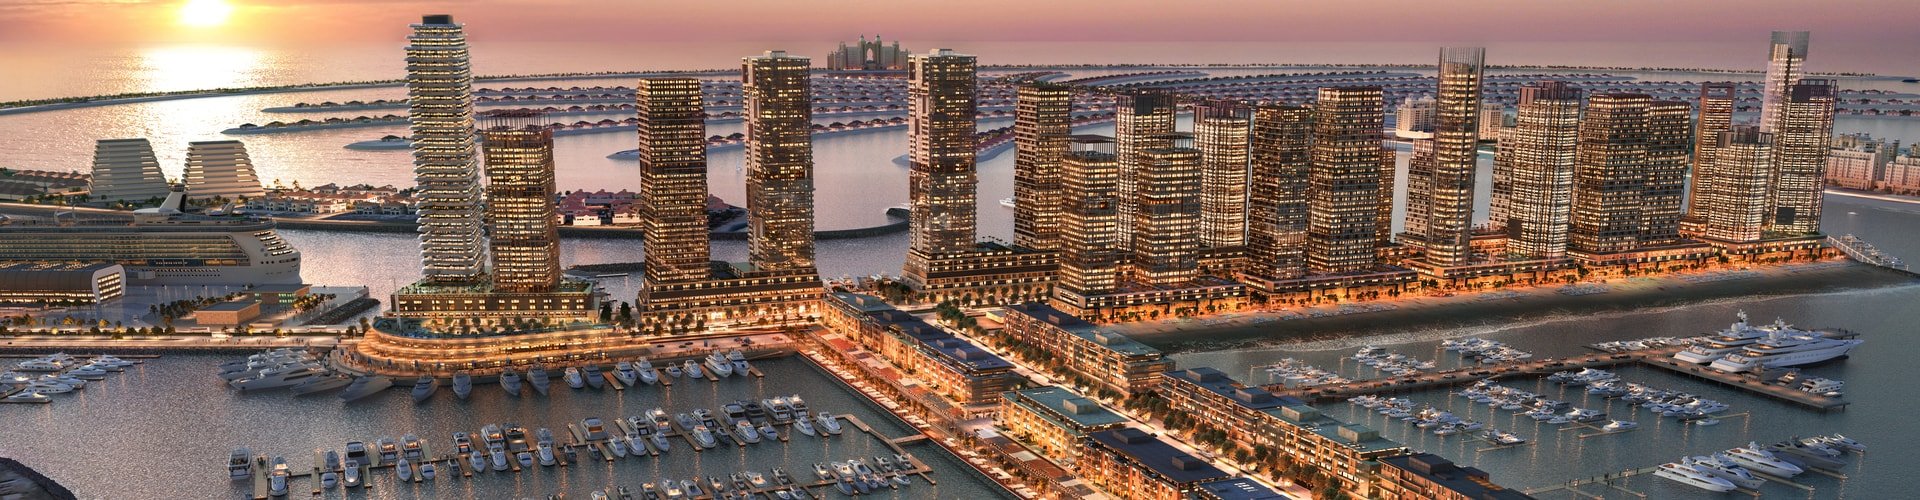 Dubai set to become a global capital for luxury yachts marinas